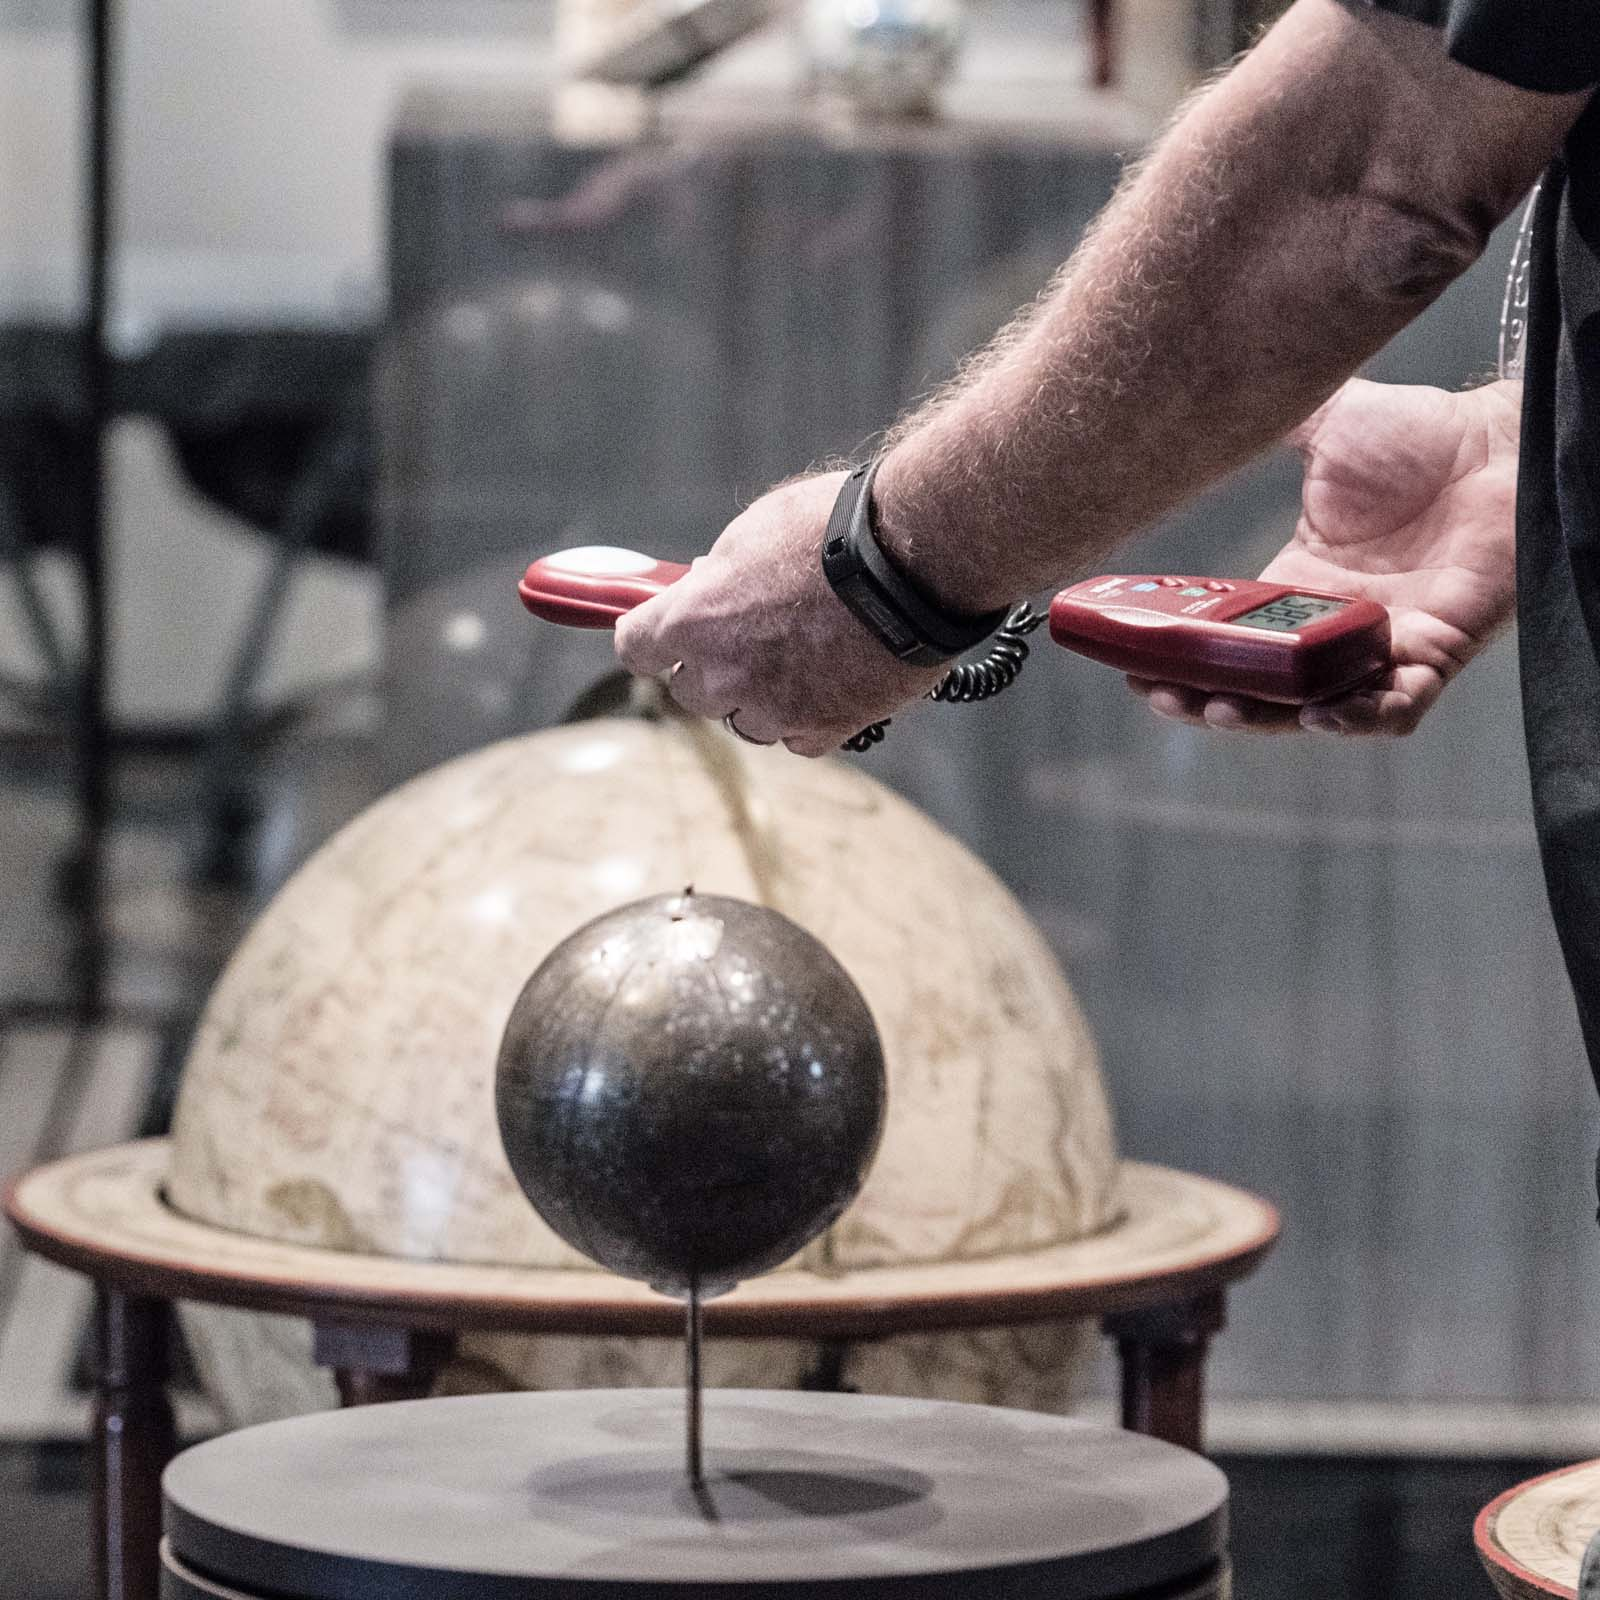 Training During the installation of the exhibition Globes, Vision of the World, Preventative Conservation, Cultural engineer